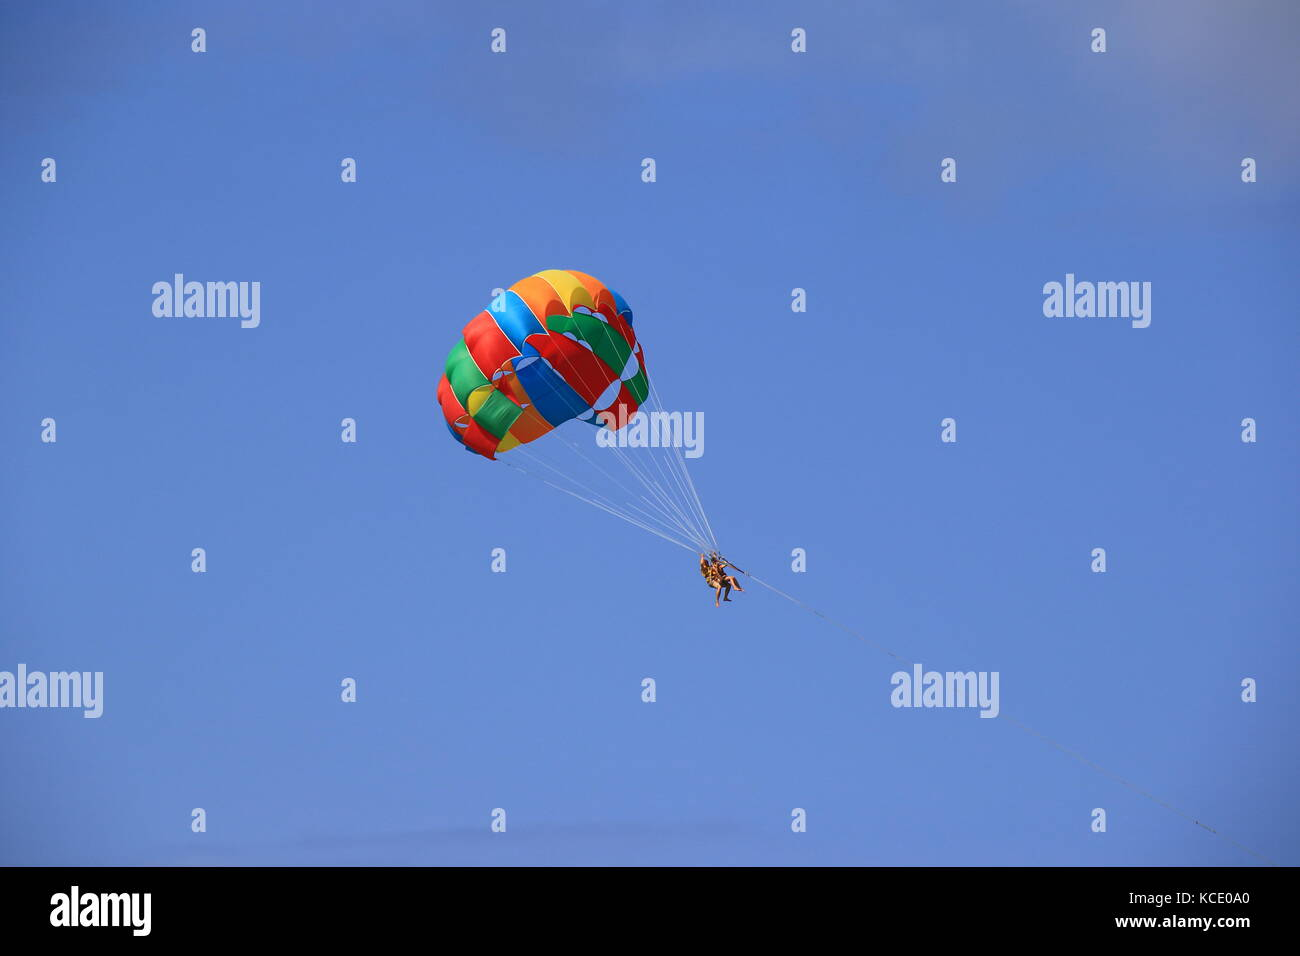 Colorful parasailing against a clear blue sky in landscape format with copy space - Stock Image